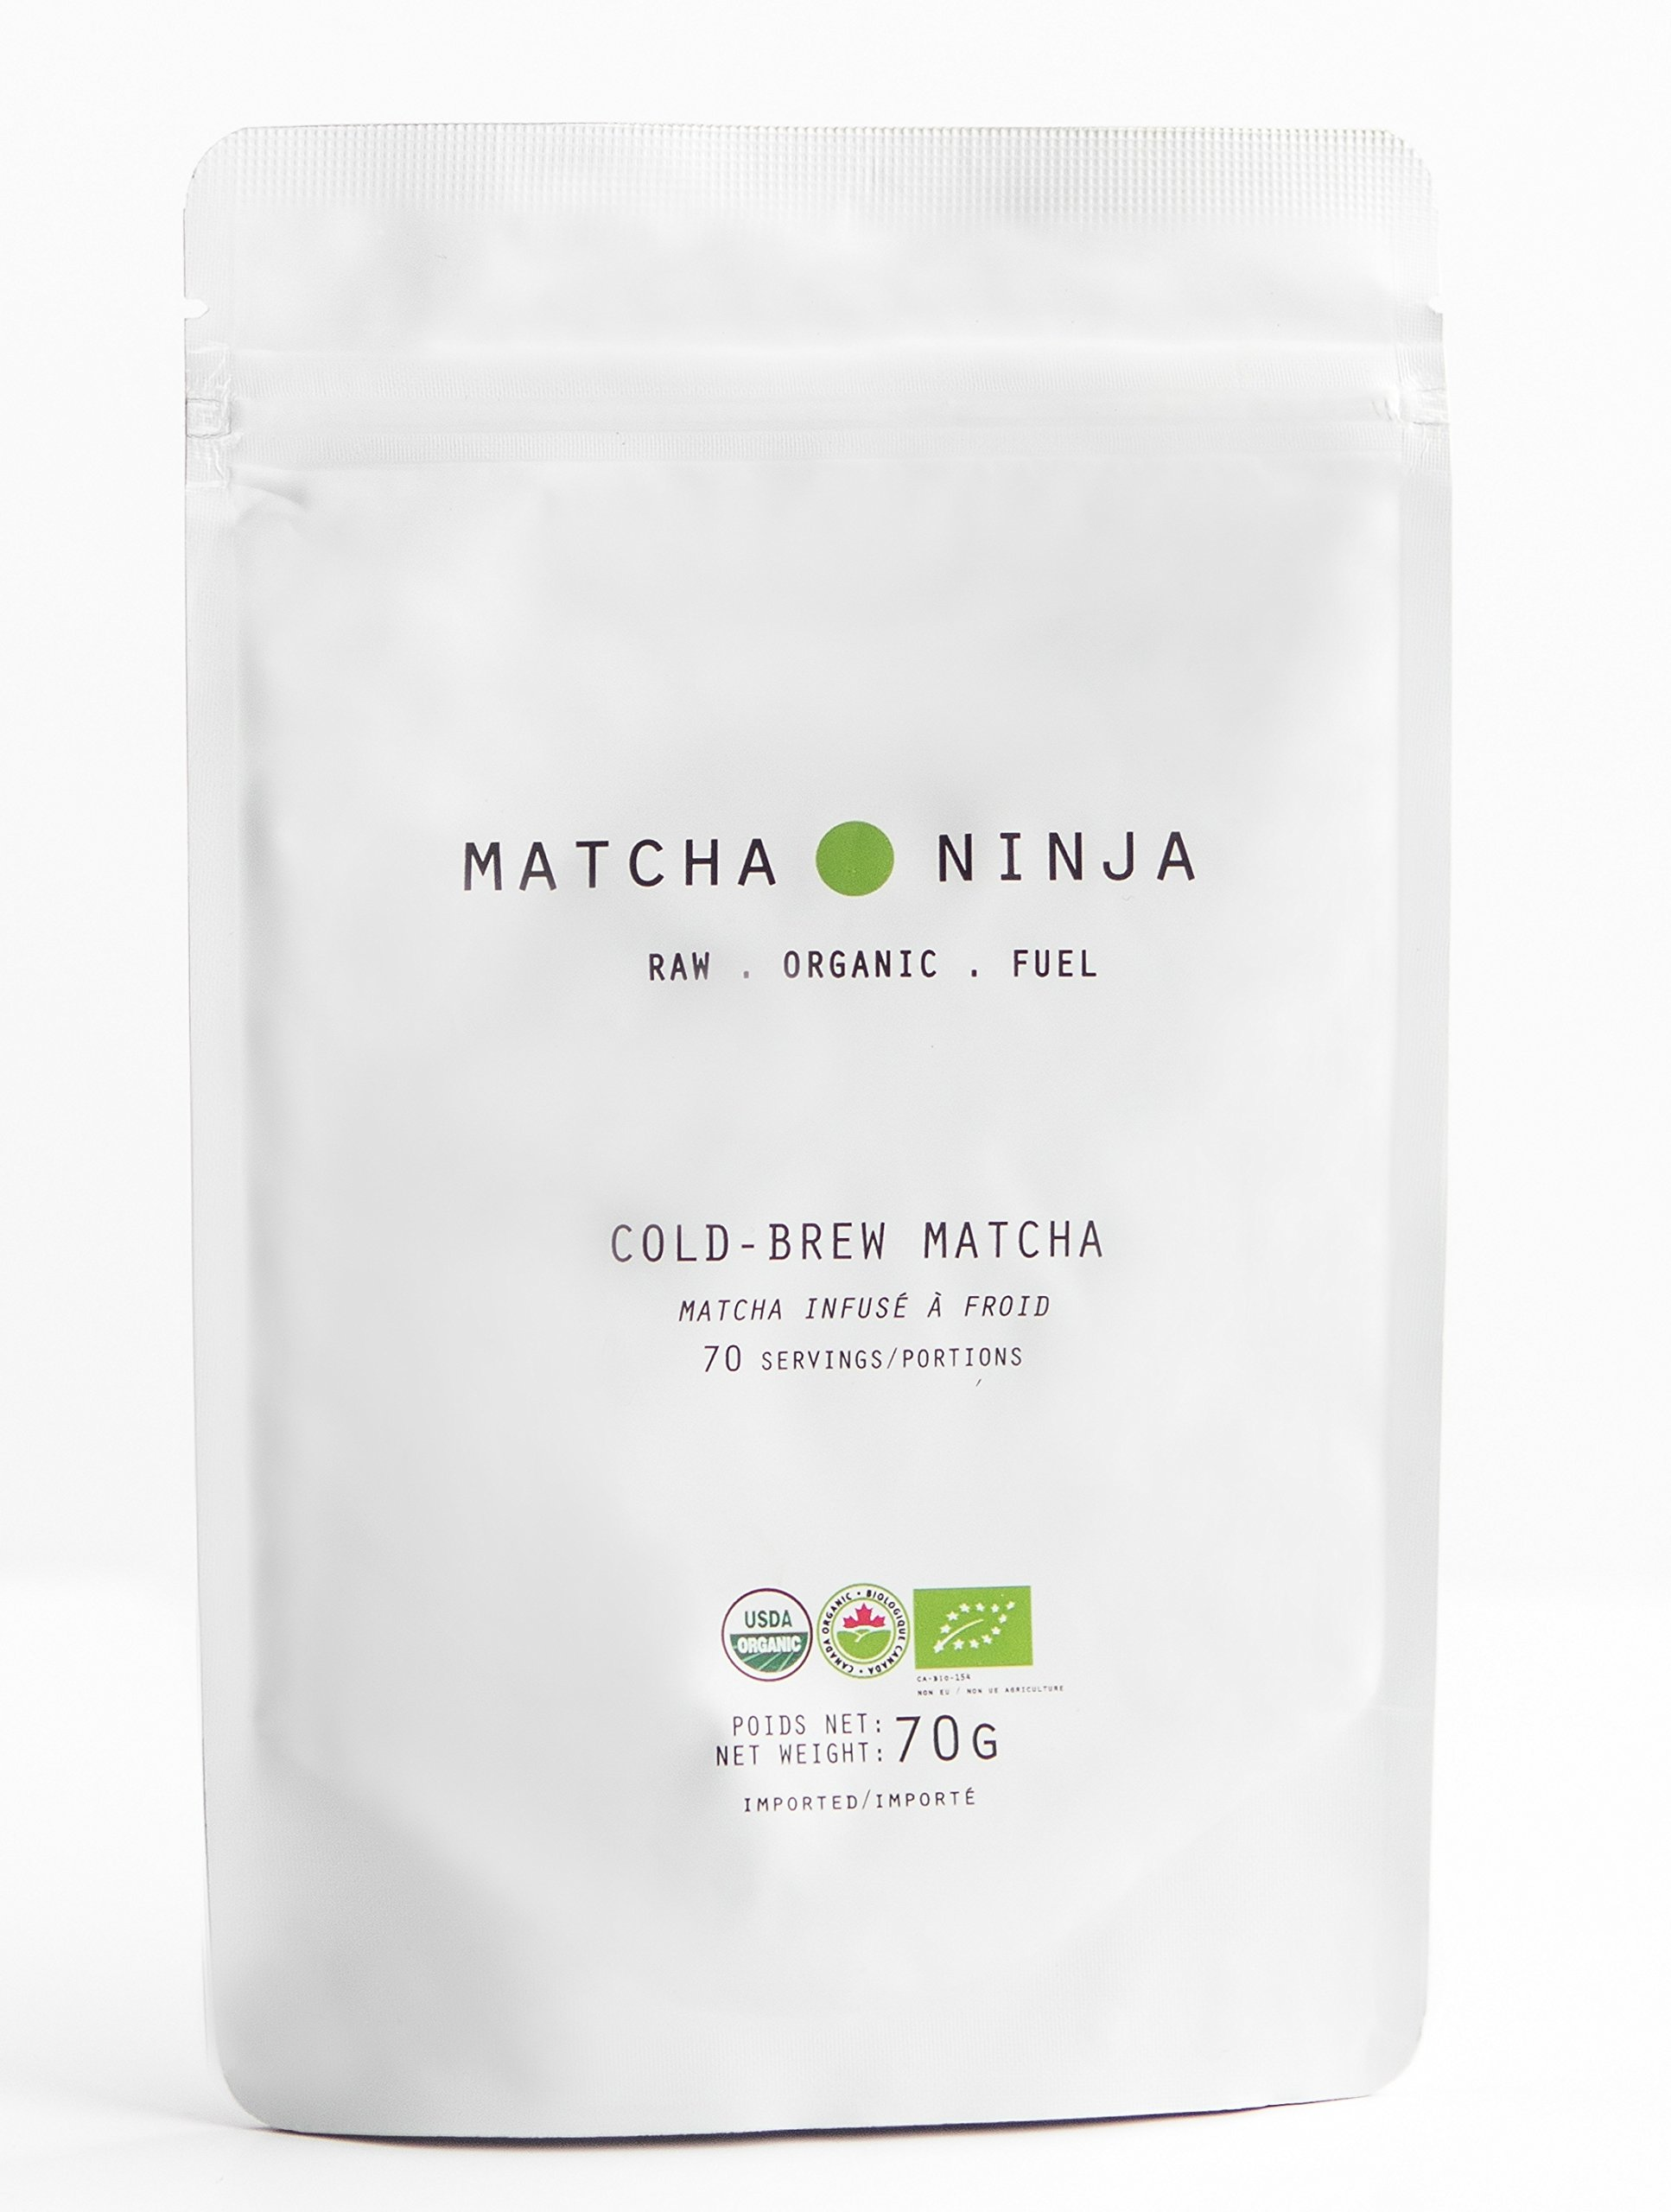 Matcha Ninja 100% Raw Organic Matcha Green Tea. Cold Water Soluble. Ceremonial Grade. Non-Bitter Extra Smooth Blend